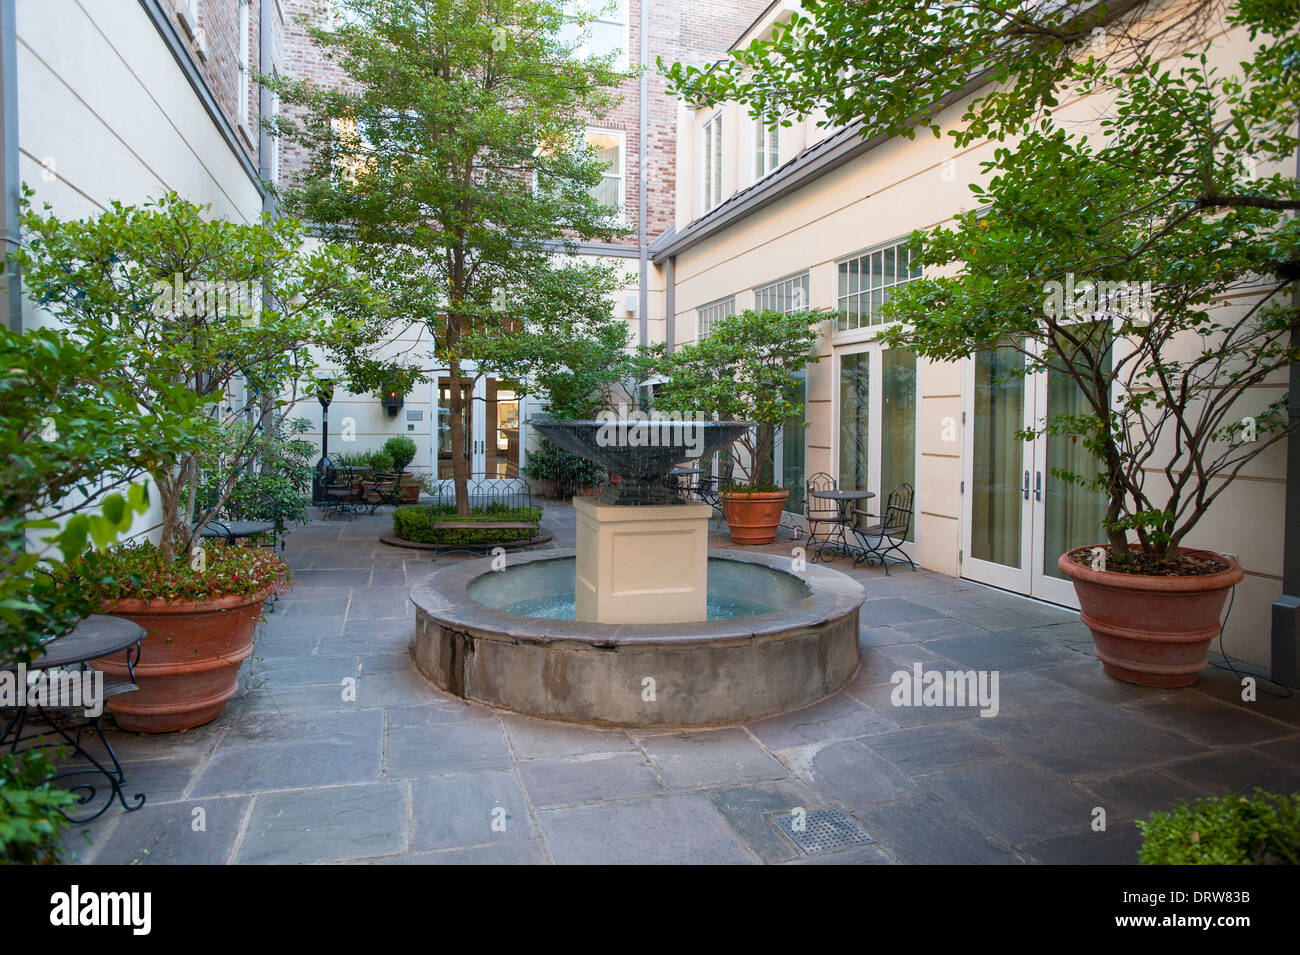 Stock photo usa mississippi ms miss greenwood luxury hotel the alluvian hotel owned by the viking range company upscale fine courtyard